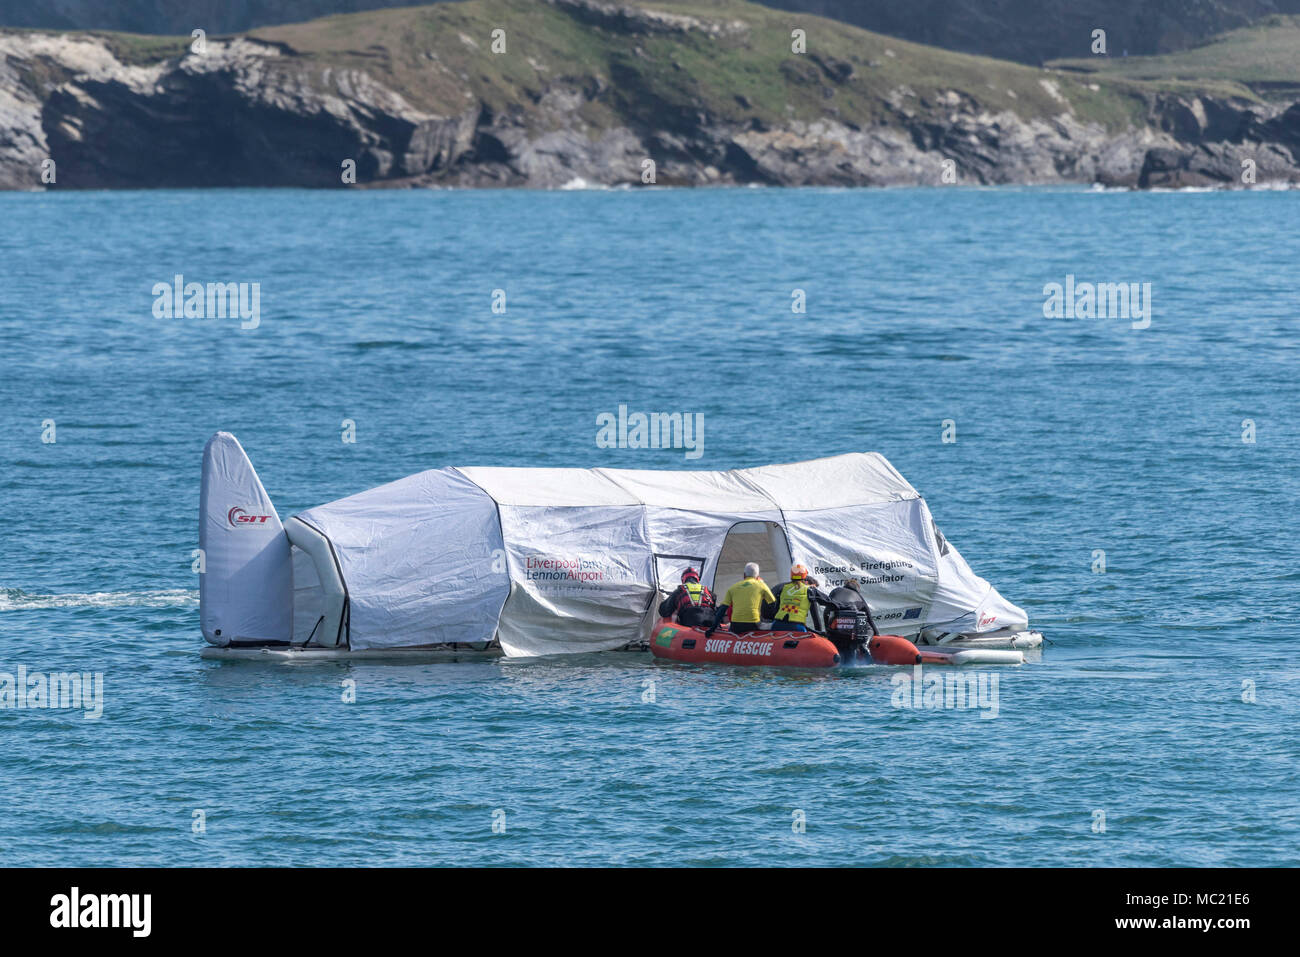 A Rescue and Firefighting Aircraft Simulator floating on the sea and being used in a GMICE (Good Medicine in Challenging Environments) major incident. - Stock Image